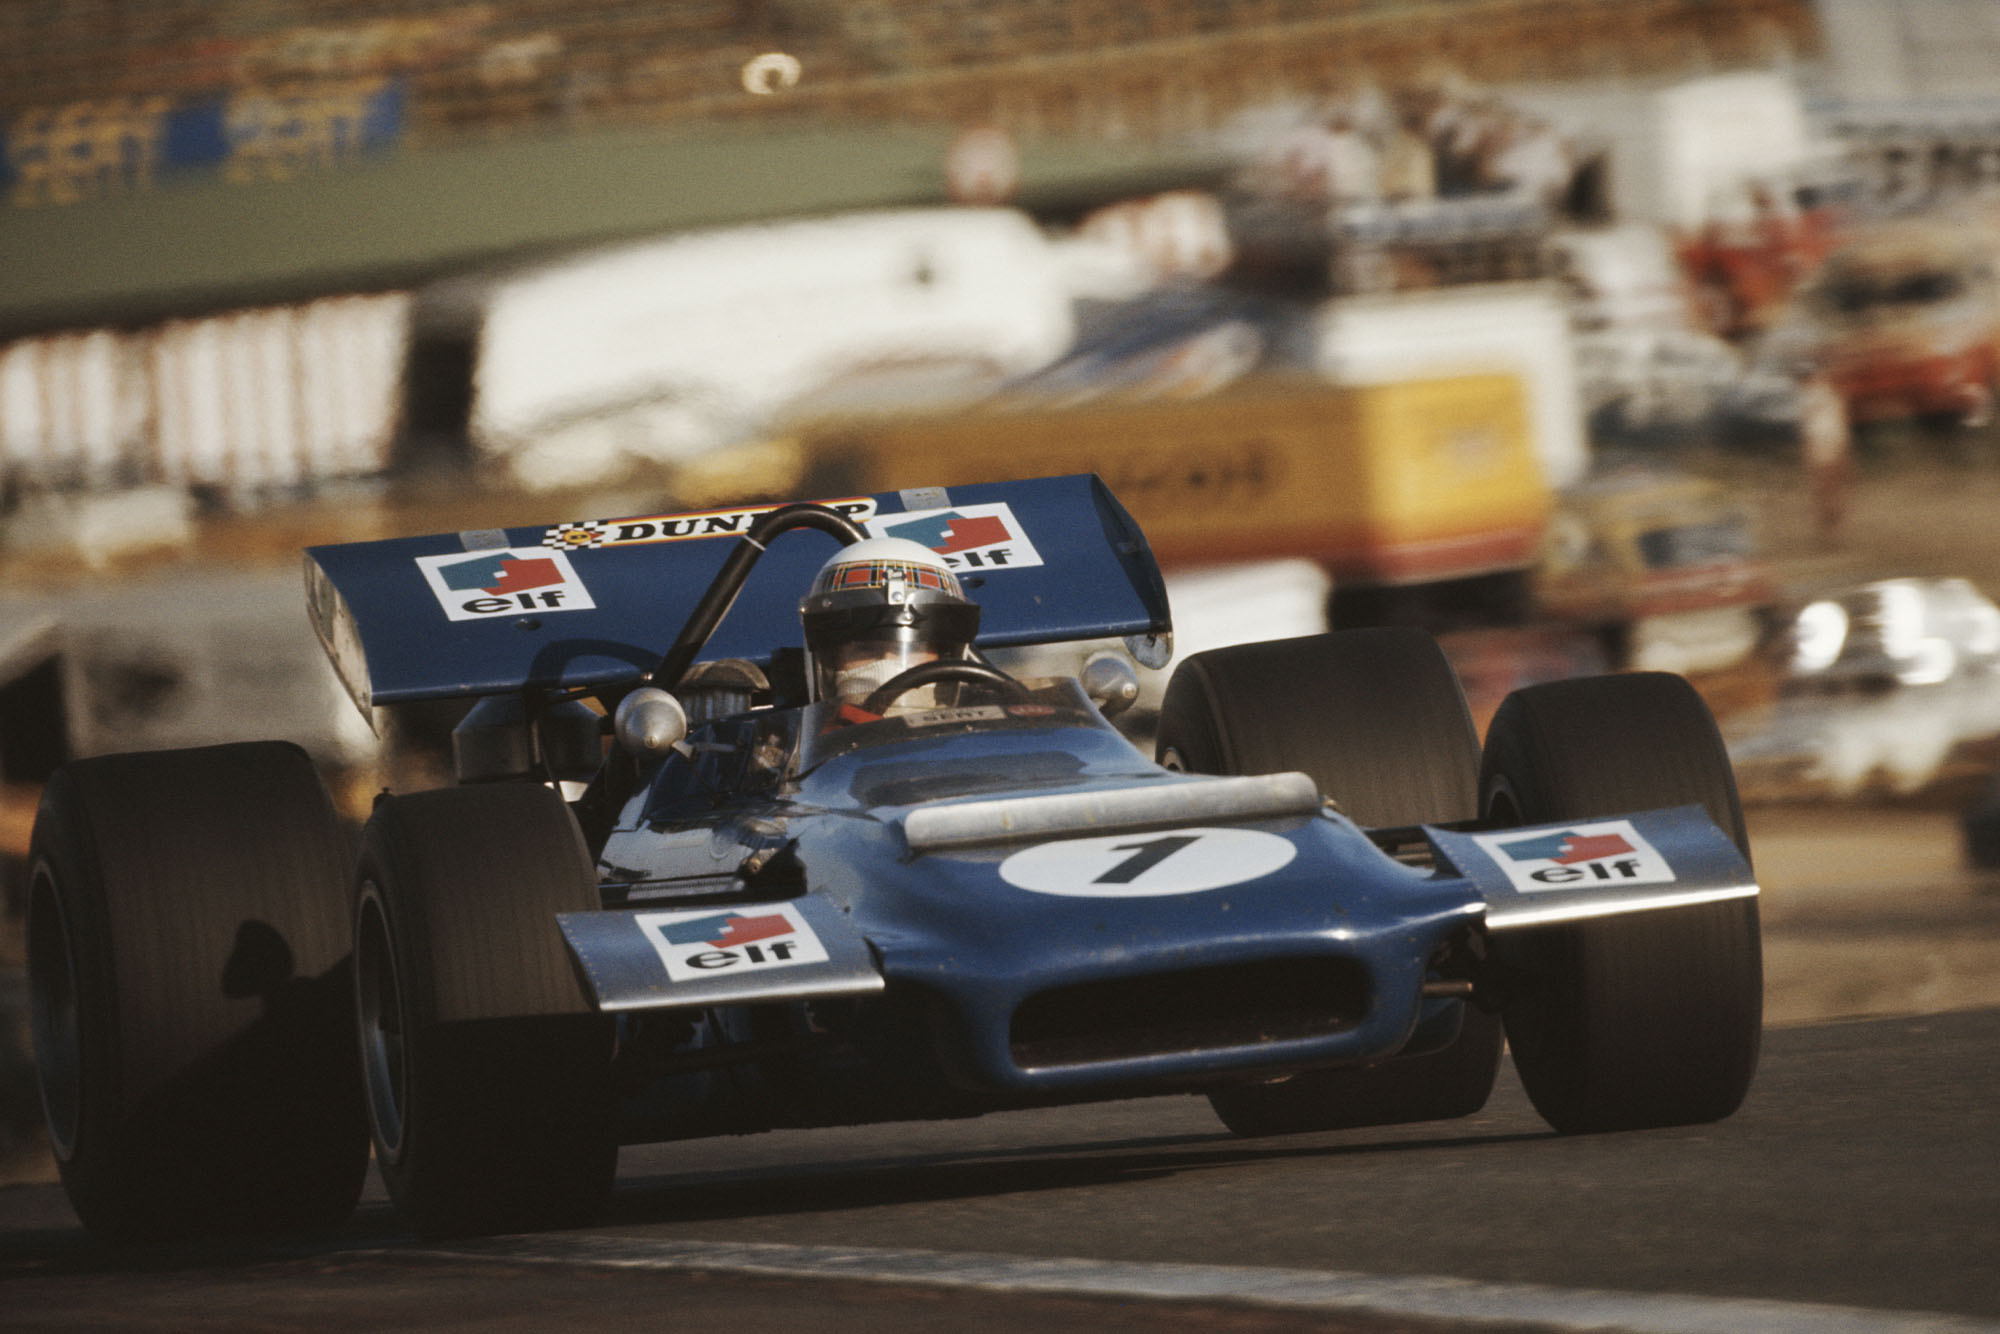 Jackie Stewart in his Tyrrell at the 1970 Spanish Grand Prix